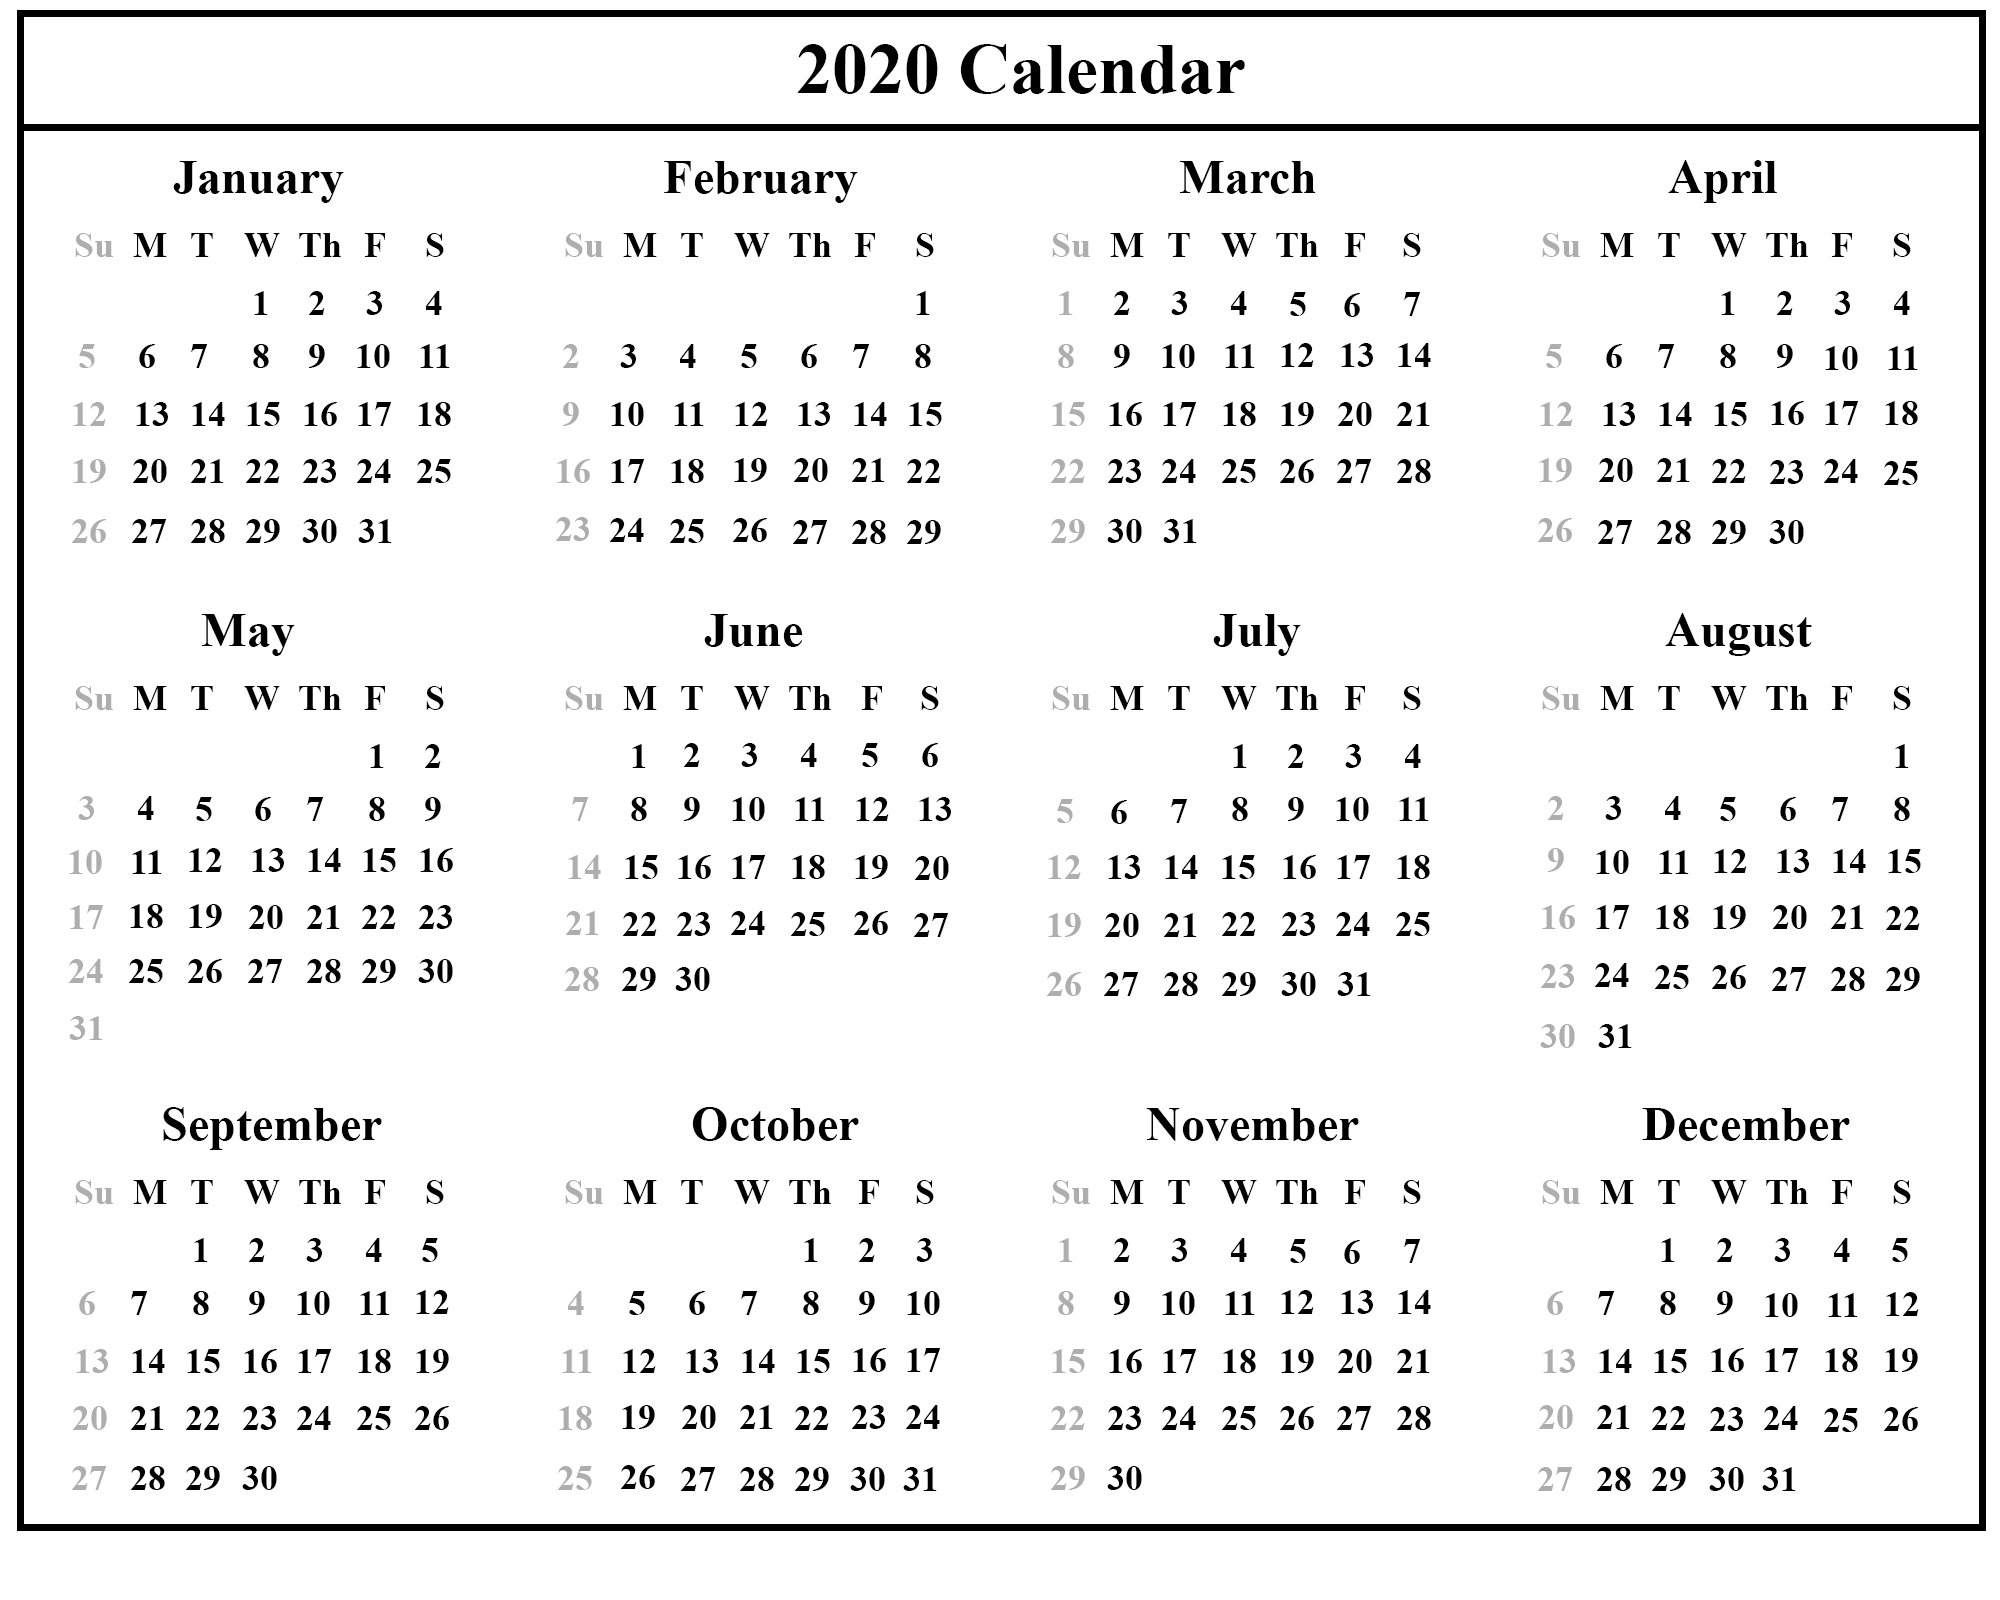 Free Printable Australia Calendar 2020 In Pdf, Excel & Word Format intended for Free 2020 Printable Pocket Calendar